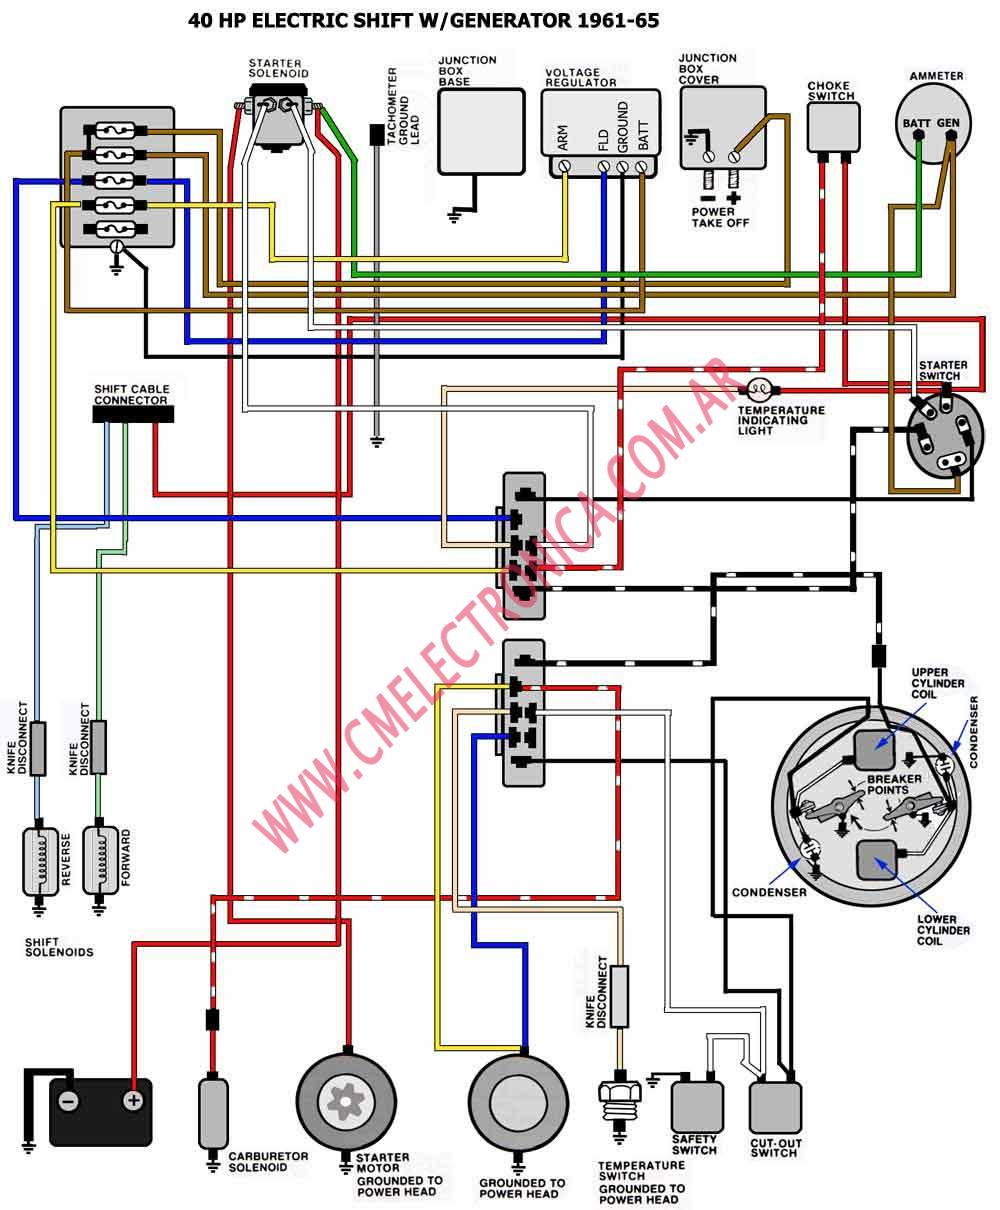 evinrude_johnson 61_66_40hp yamaha 200 outboard wiring harness diagram yamaha outboard main 1999 200 hp yamaha outboard wire harness at soozxer.org